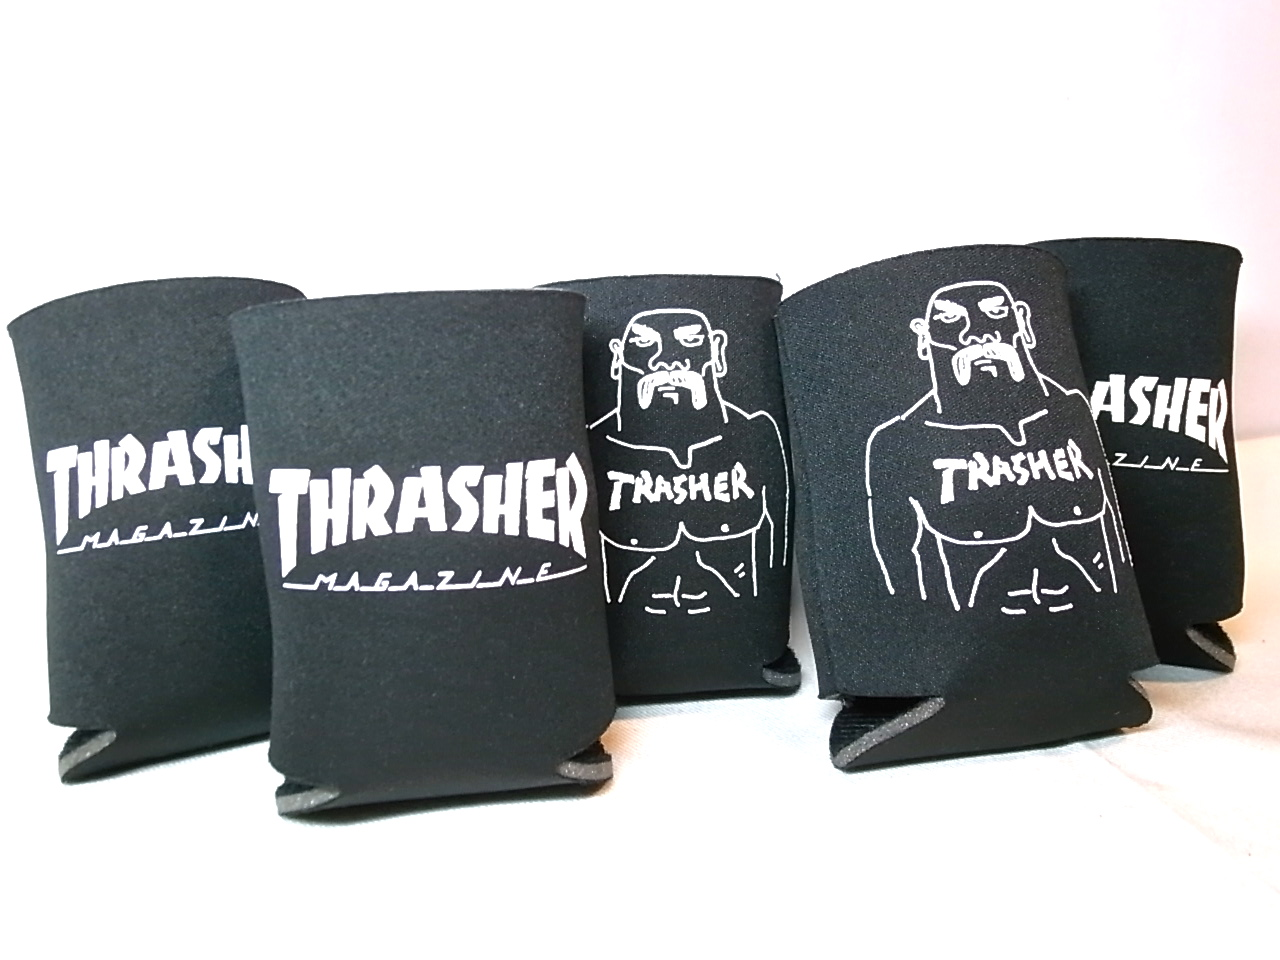 THRASHER NEW ITEMS!!!!_d0101000_14111875.jpg